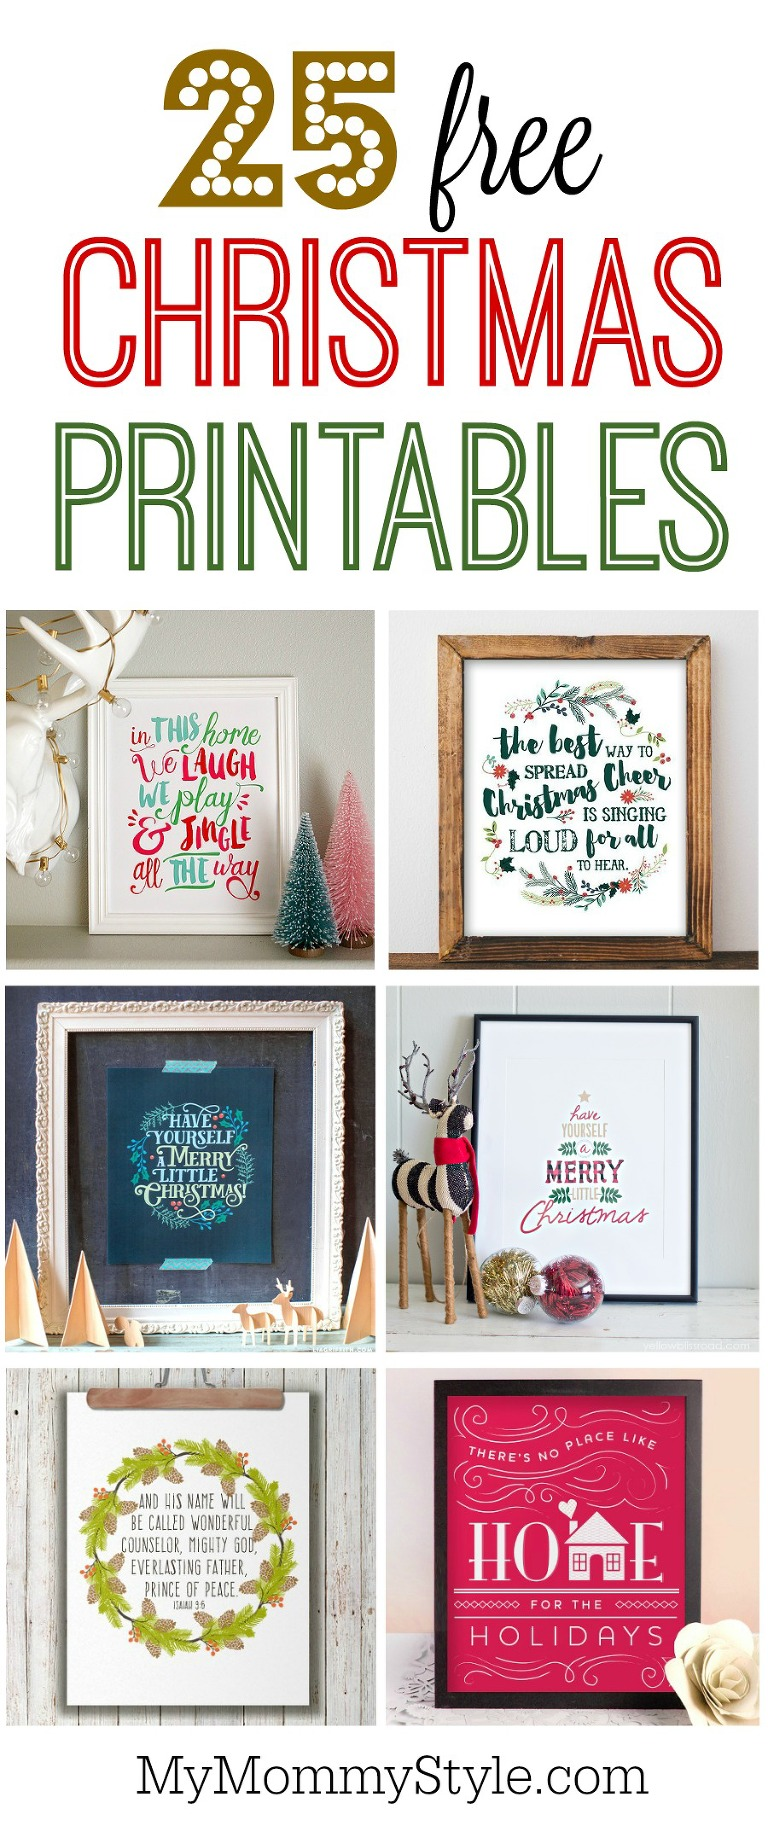 photo regarding Free Printable Christmas named 25 no cost Xmas printables - My Mommy Layout